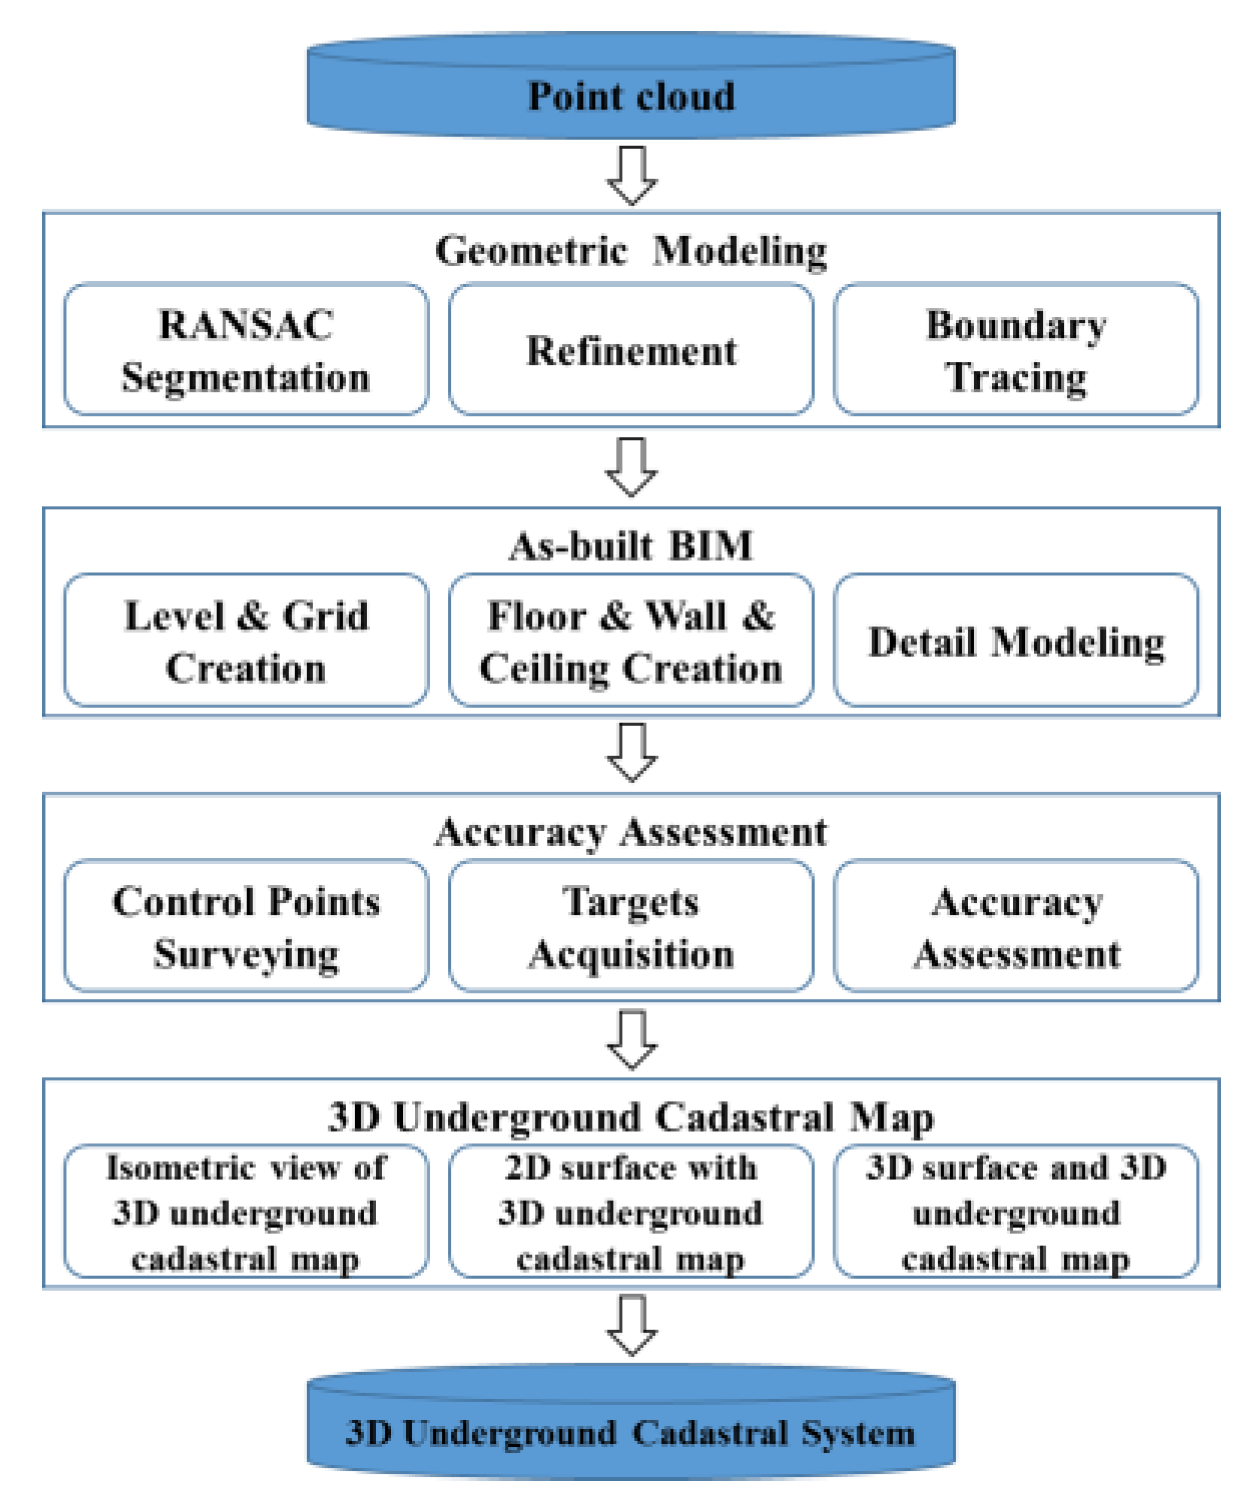 Sensors Free Full Text Development Of A 3d Underground Cadastral System With Indoor Mapping For As Built Bim The Case Study Of Gangnam Subway Station In Korea Html